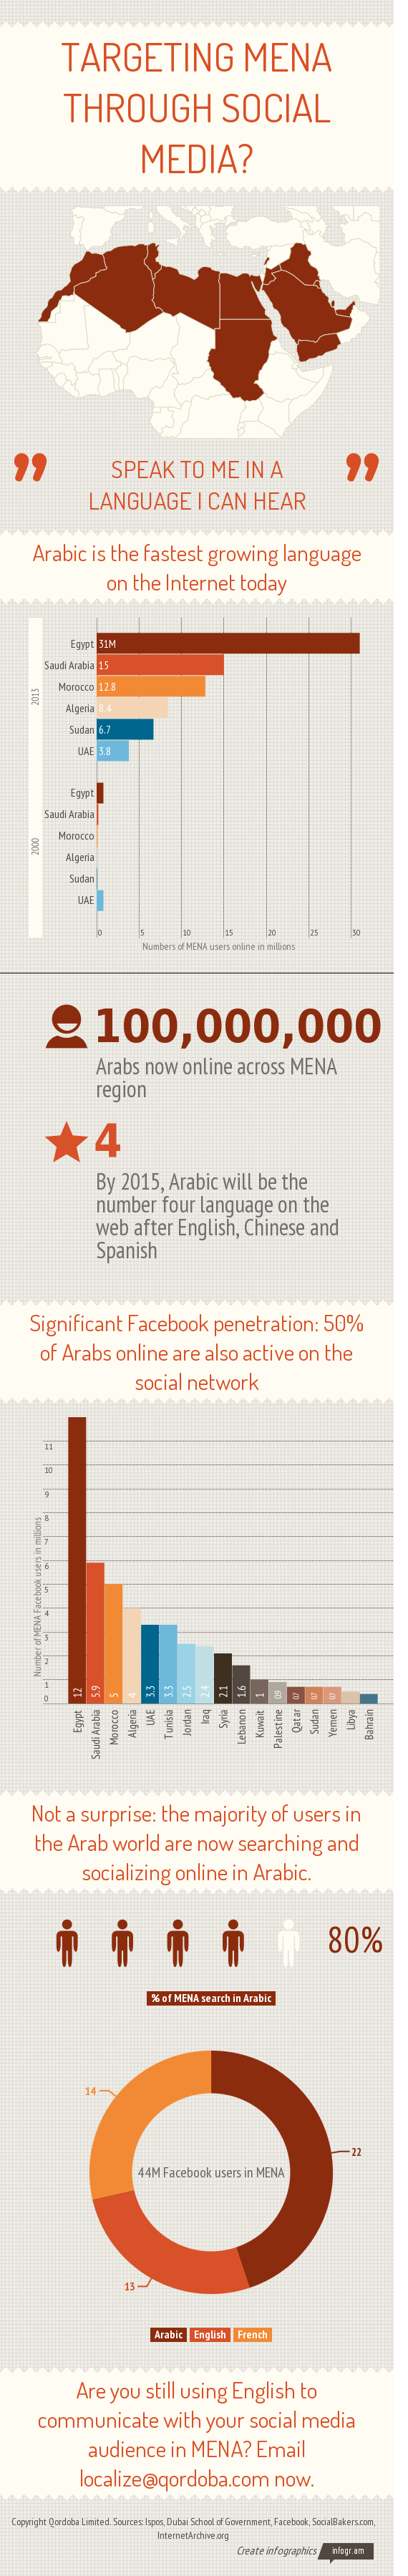 Targeting MENA through social media